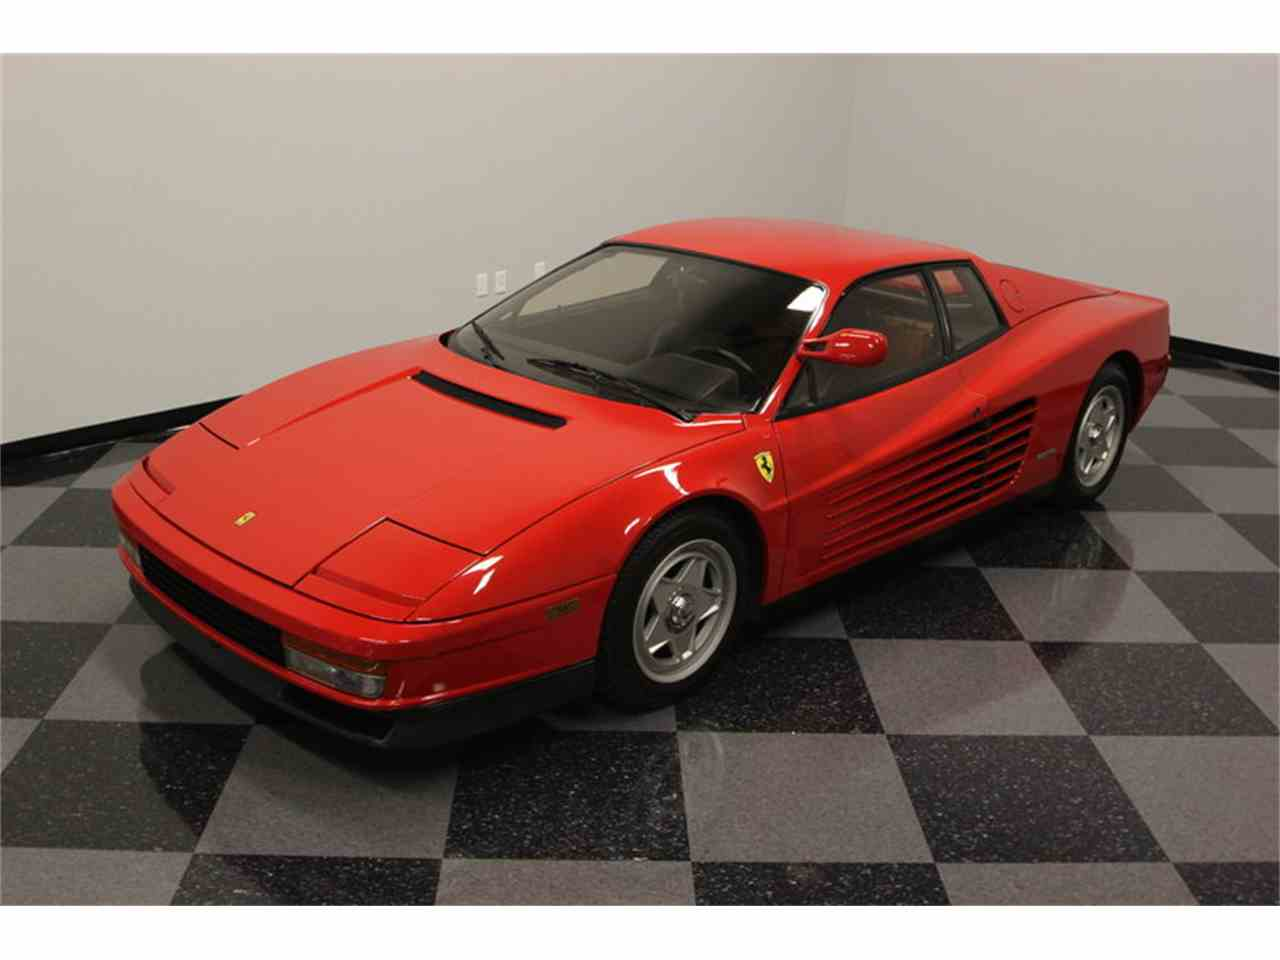 Large Picture of 1986 Ferrari Testarossa located in Florida Offered by Streetside Classics - Tampa - FNNC